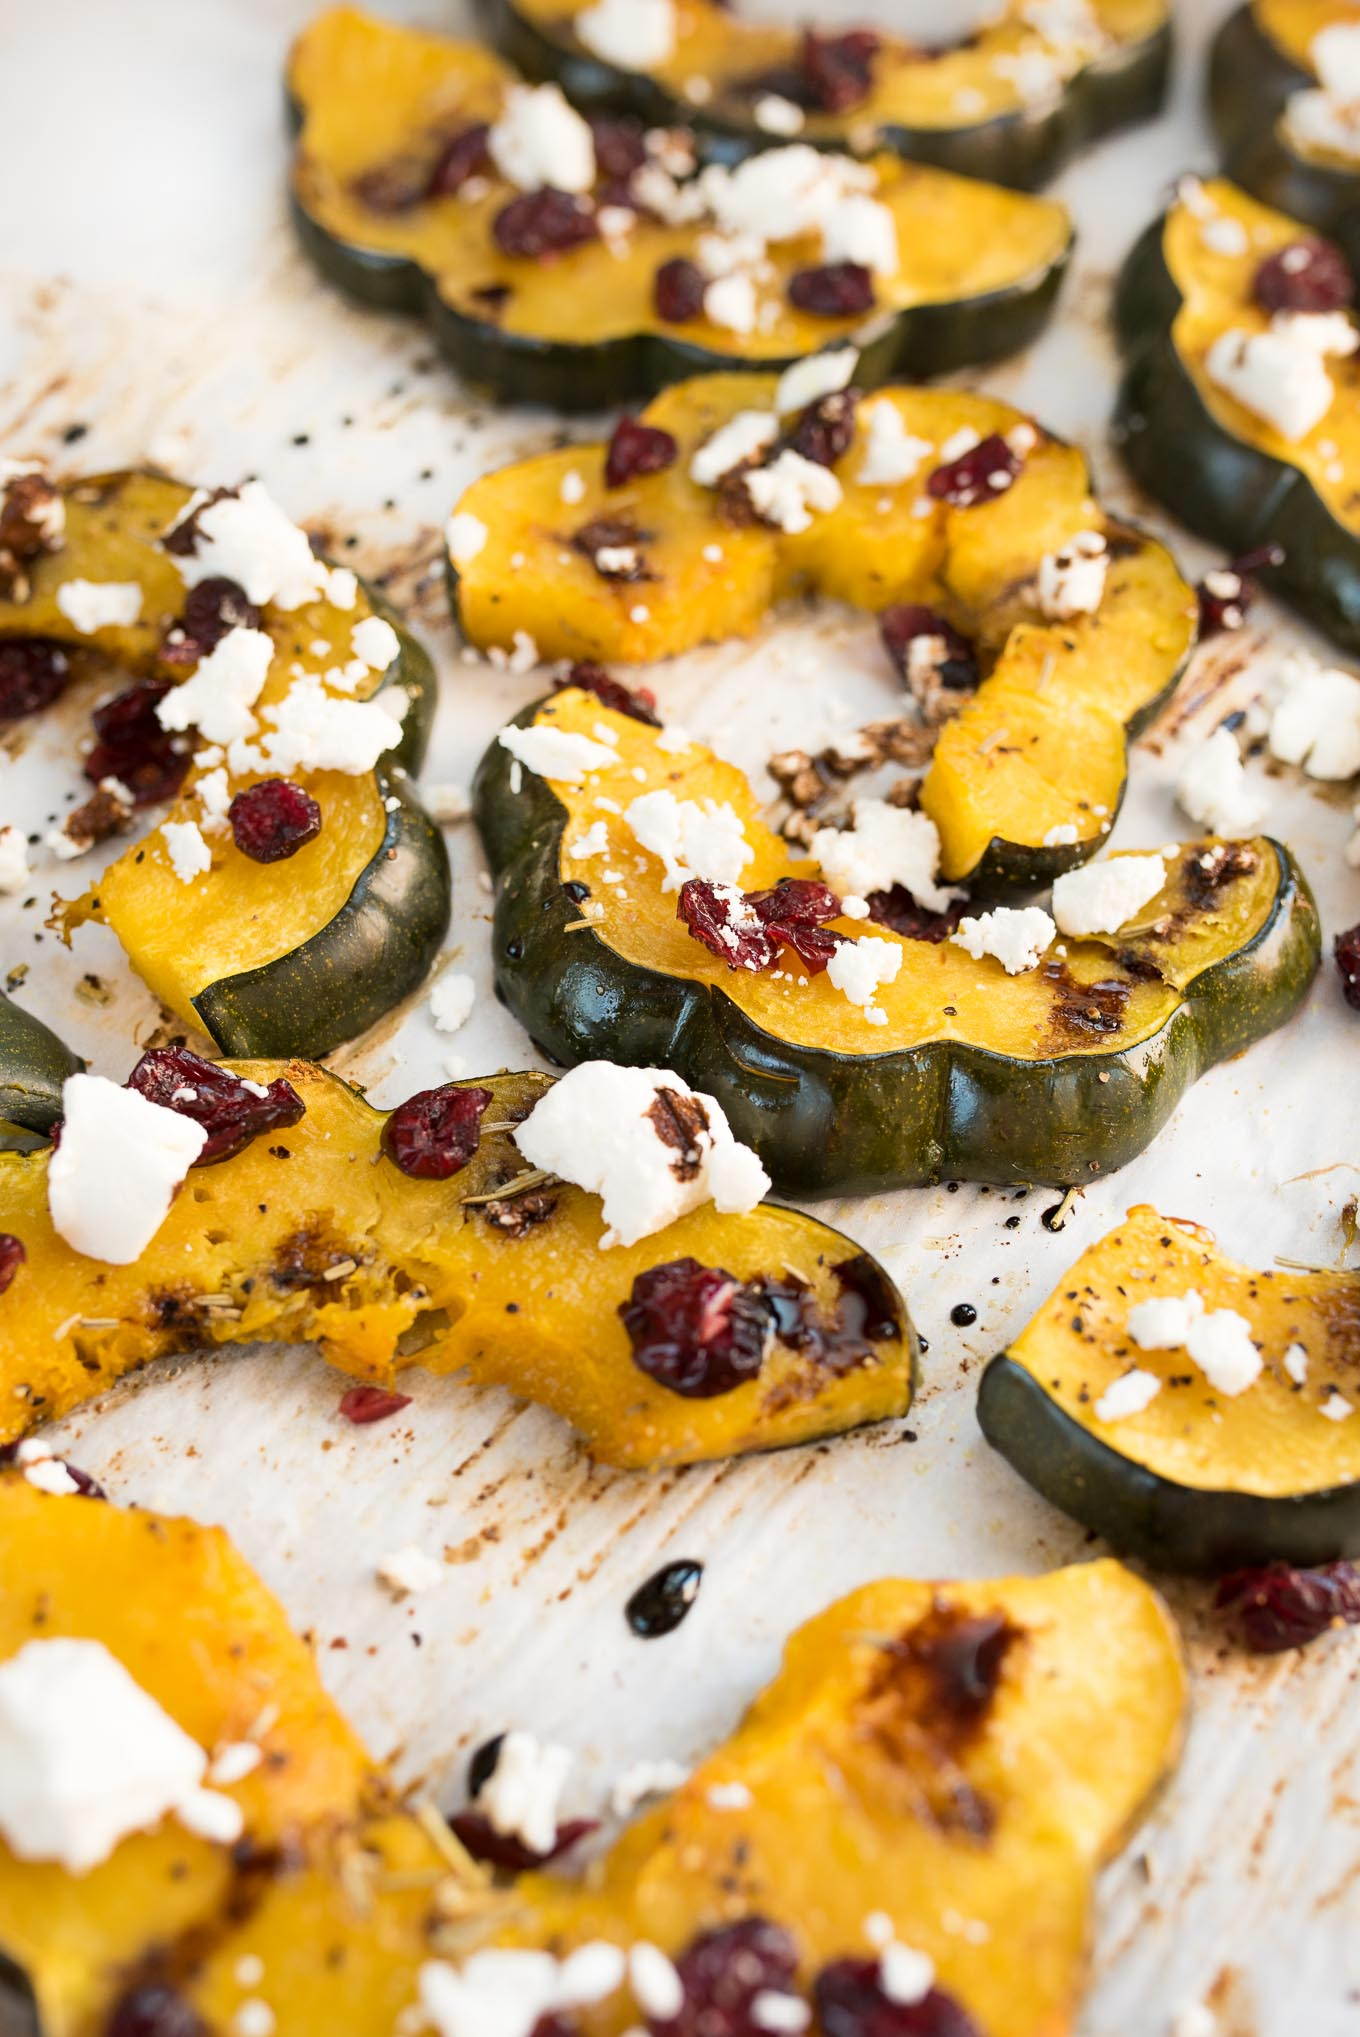 Roasted Acorn Squash with Cranberries, Goat Cheese and Balsamic Glaze #glutenfree #vegetarian side that will be perfect on your Holiday table | www.nutritiouseats.com